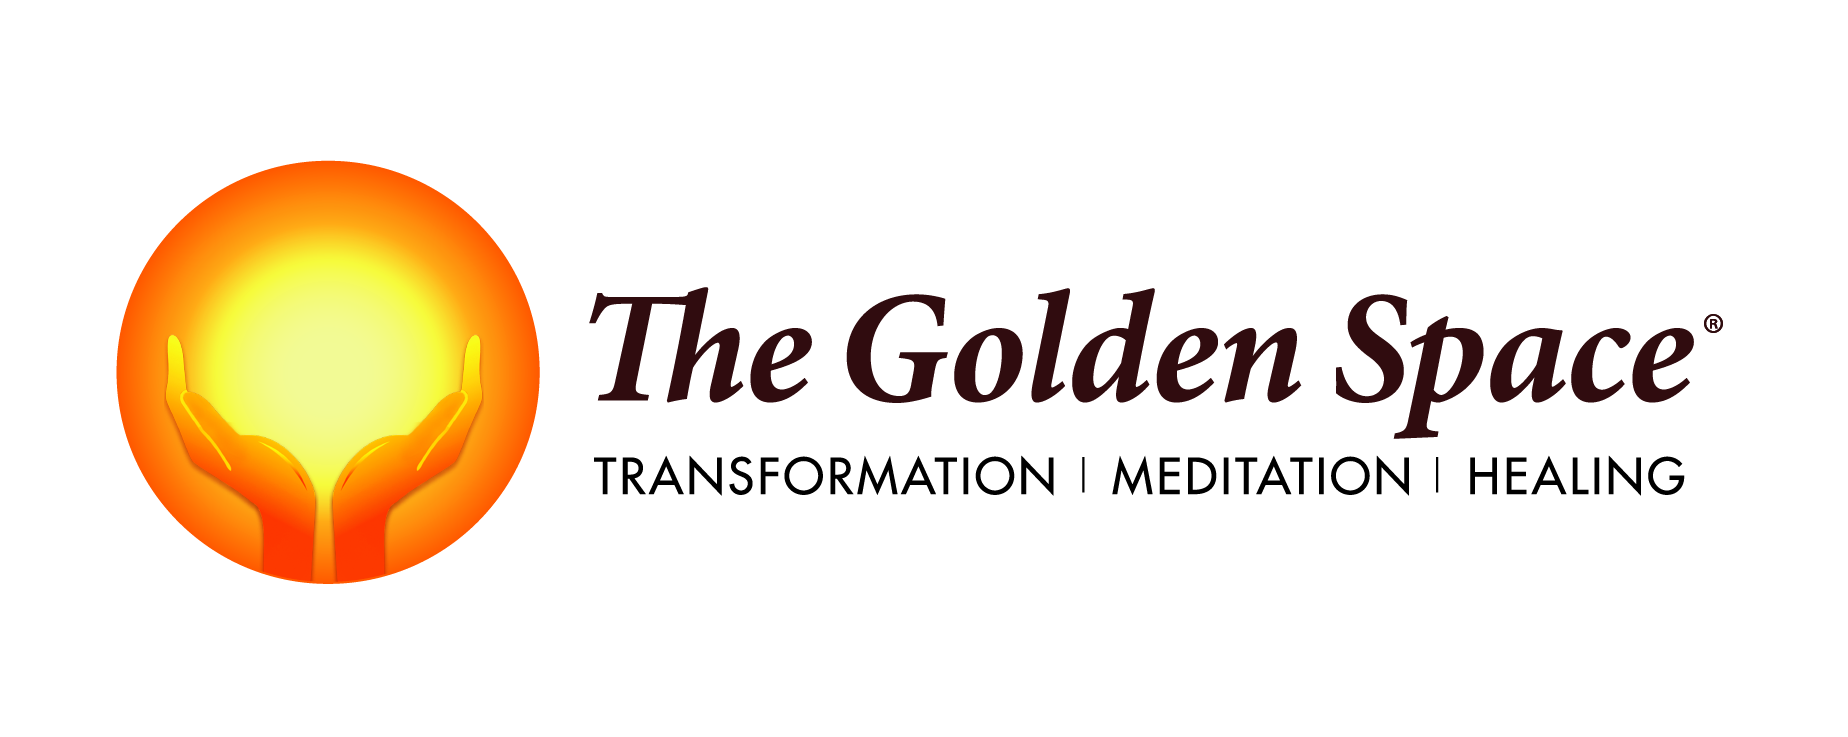 The Golden Space I